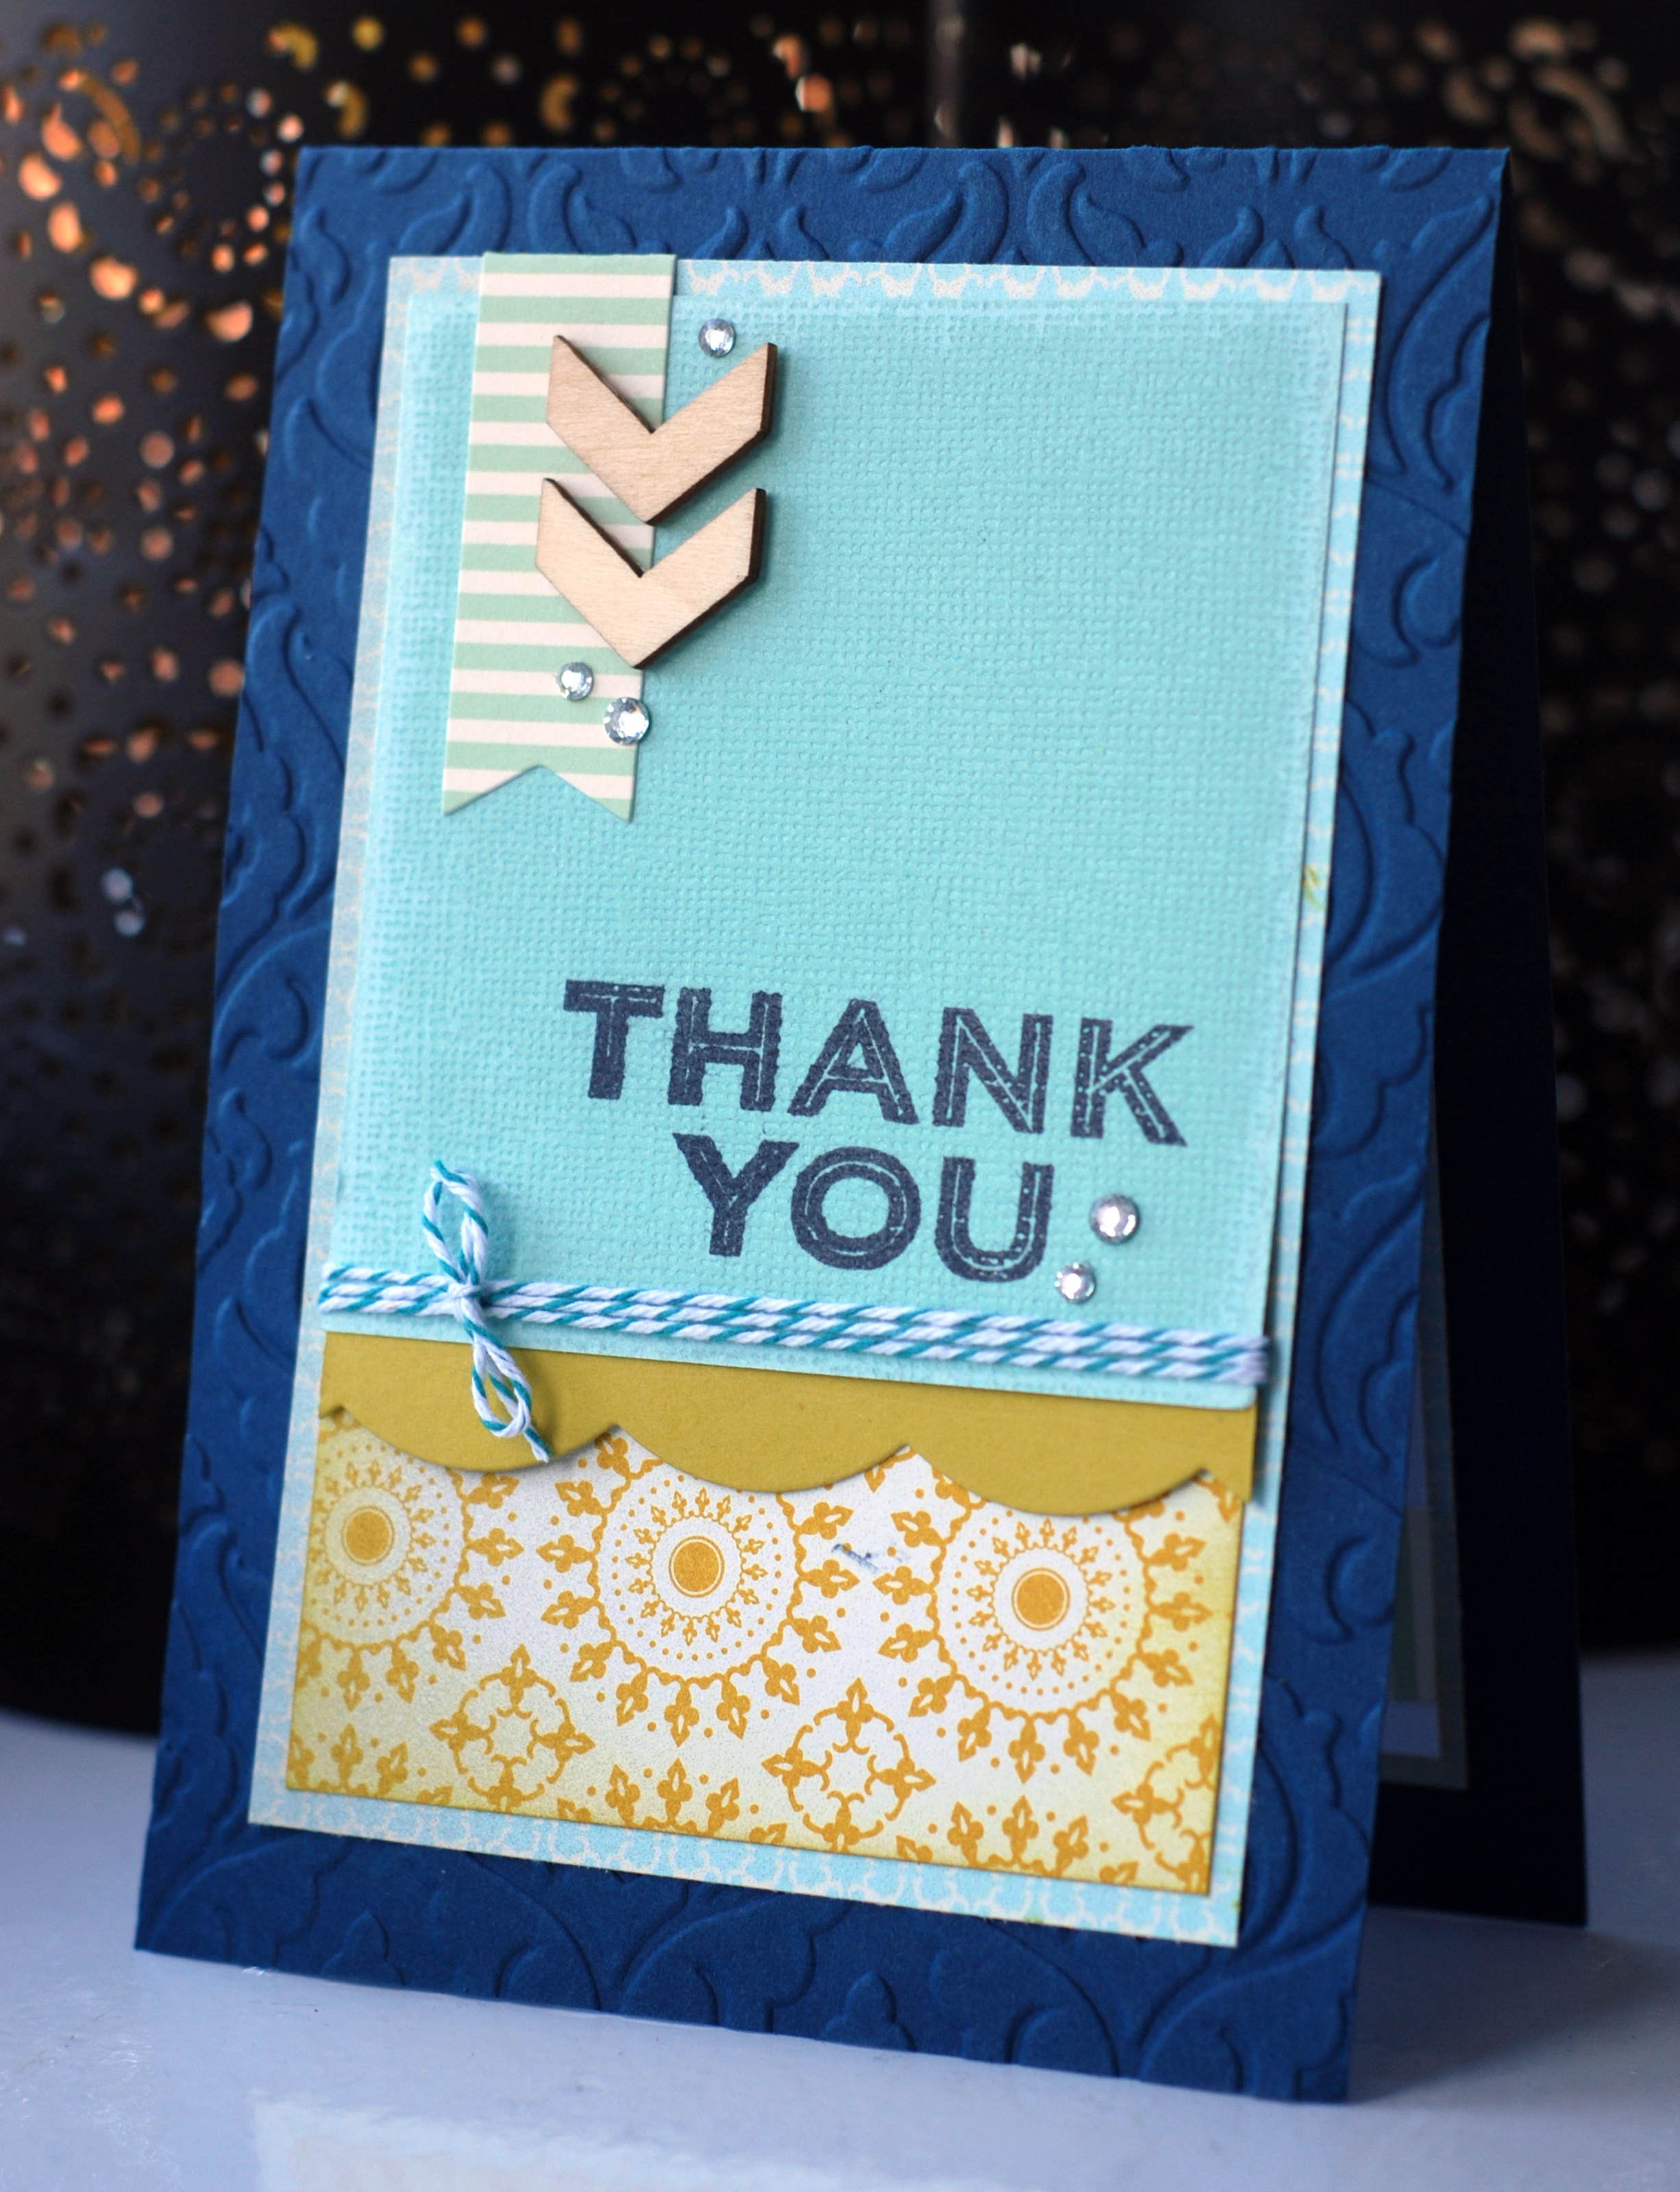 Handmade thank you card made using Simply Celebrate from Stampin' Up!